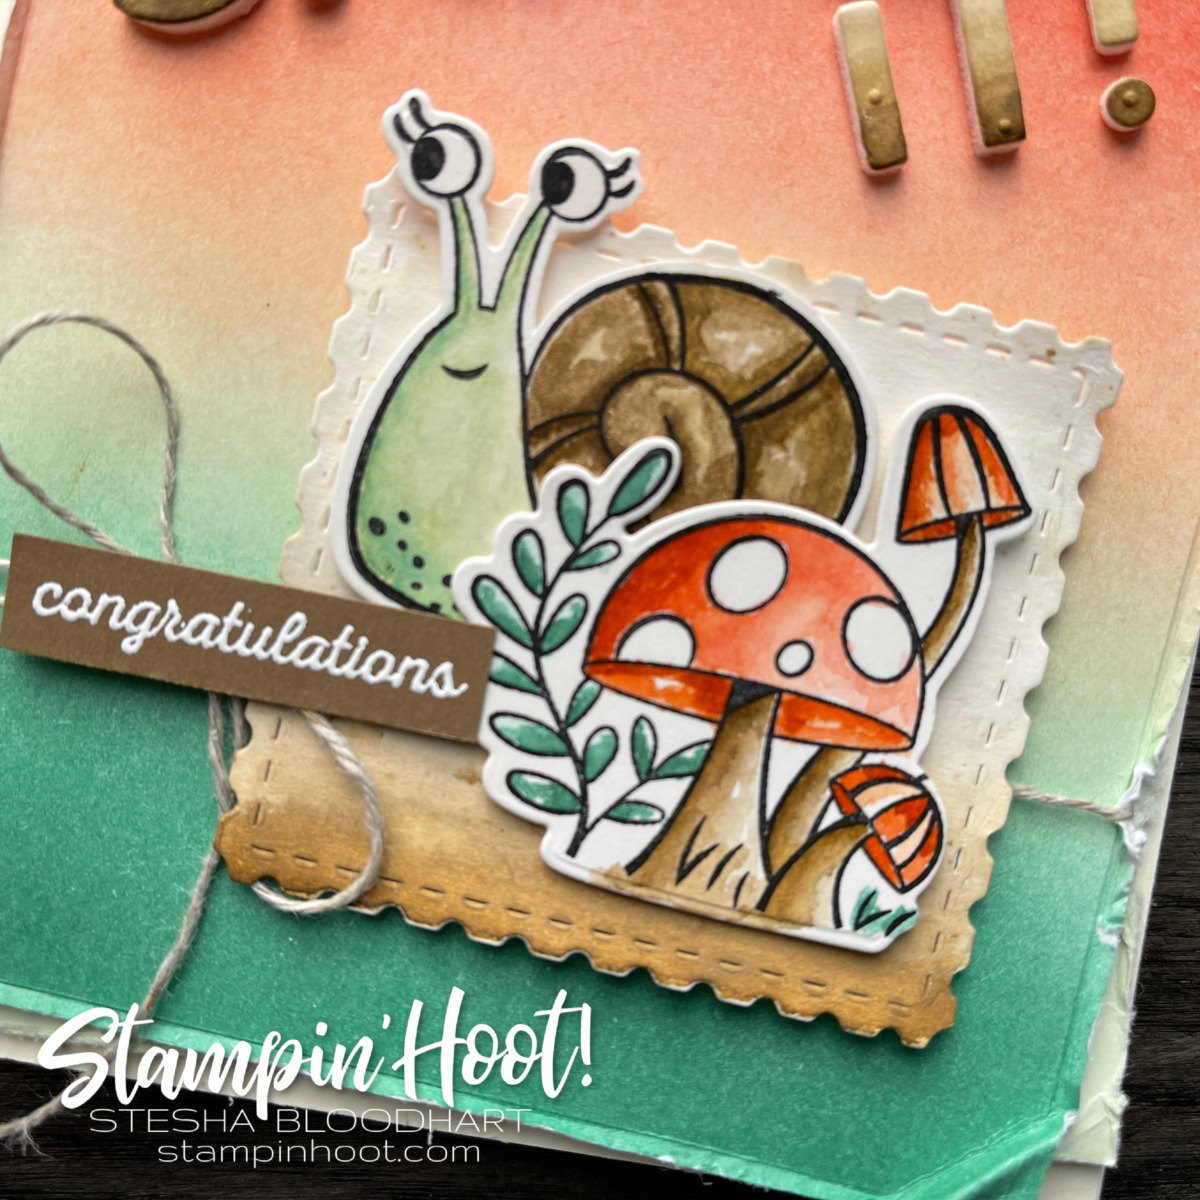 Snailed It Congraulations Card for Stampin' Fancy Friday March Challenge_Stesha Bloodhart Instagram Post (1)